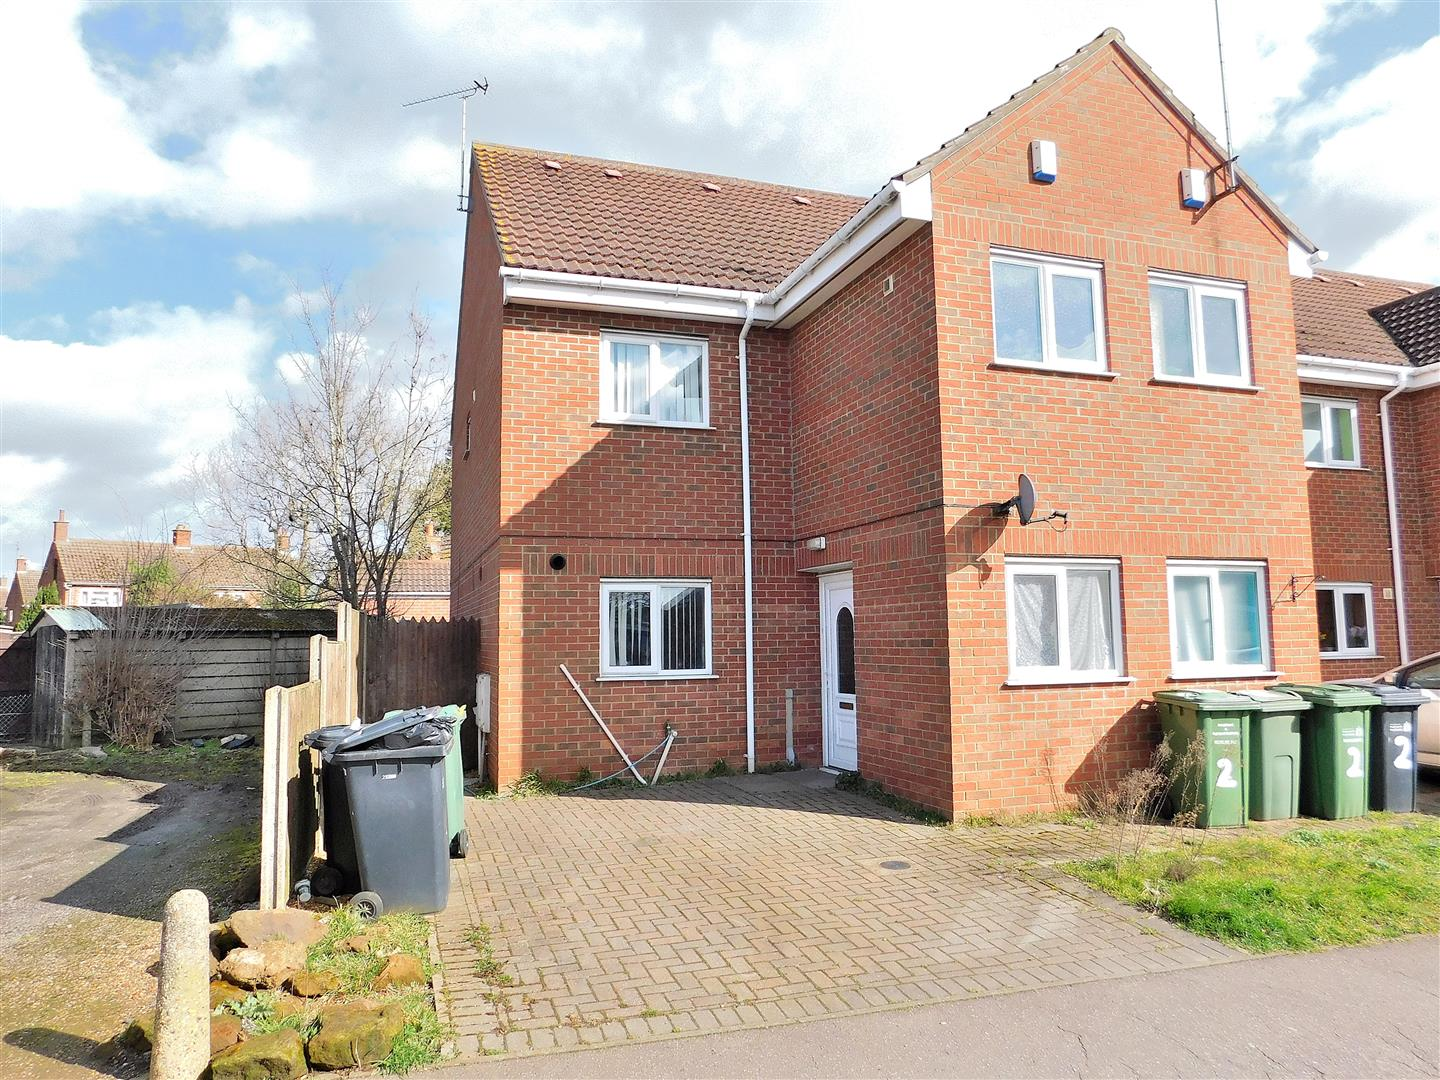 3 bed end of terrace house for sale in North Star Court, King's Lynn, PE30